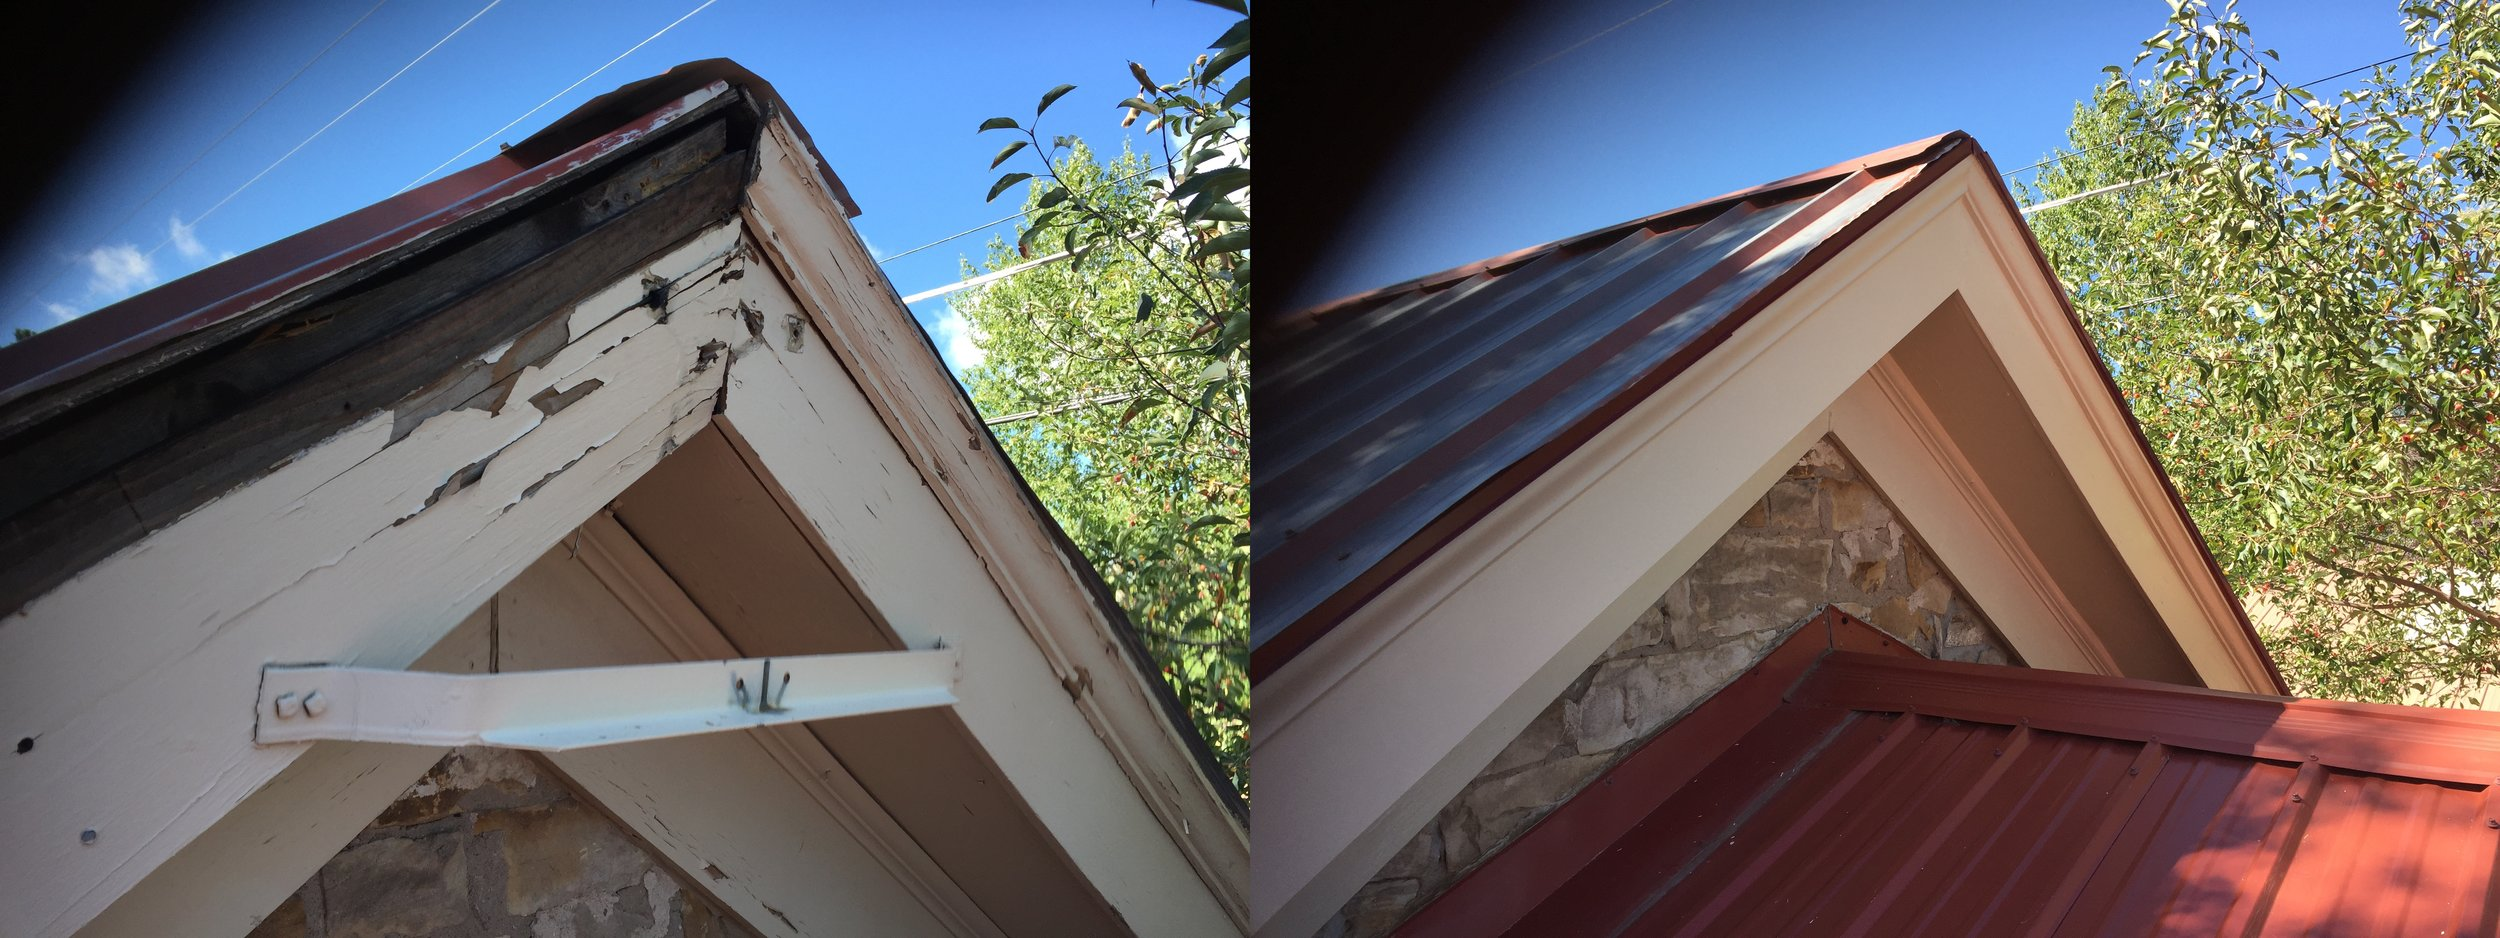 Before and after gable roof damage